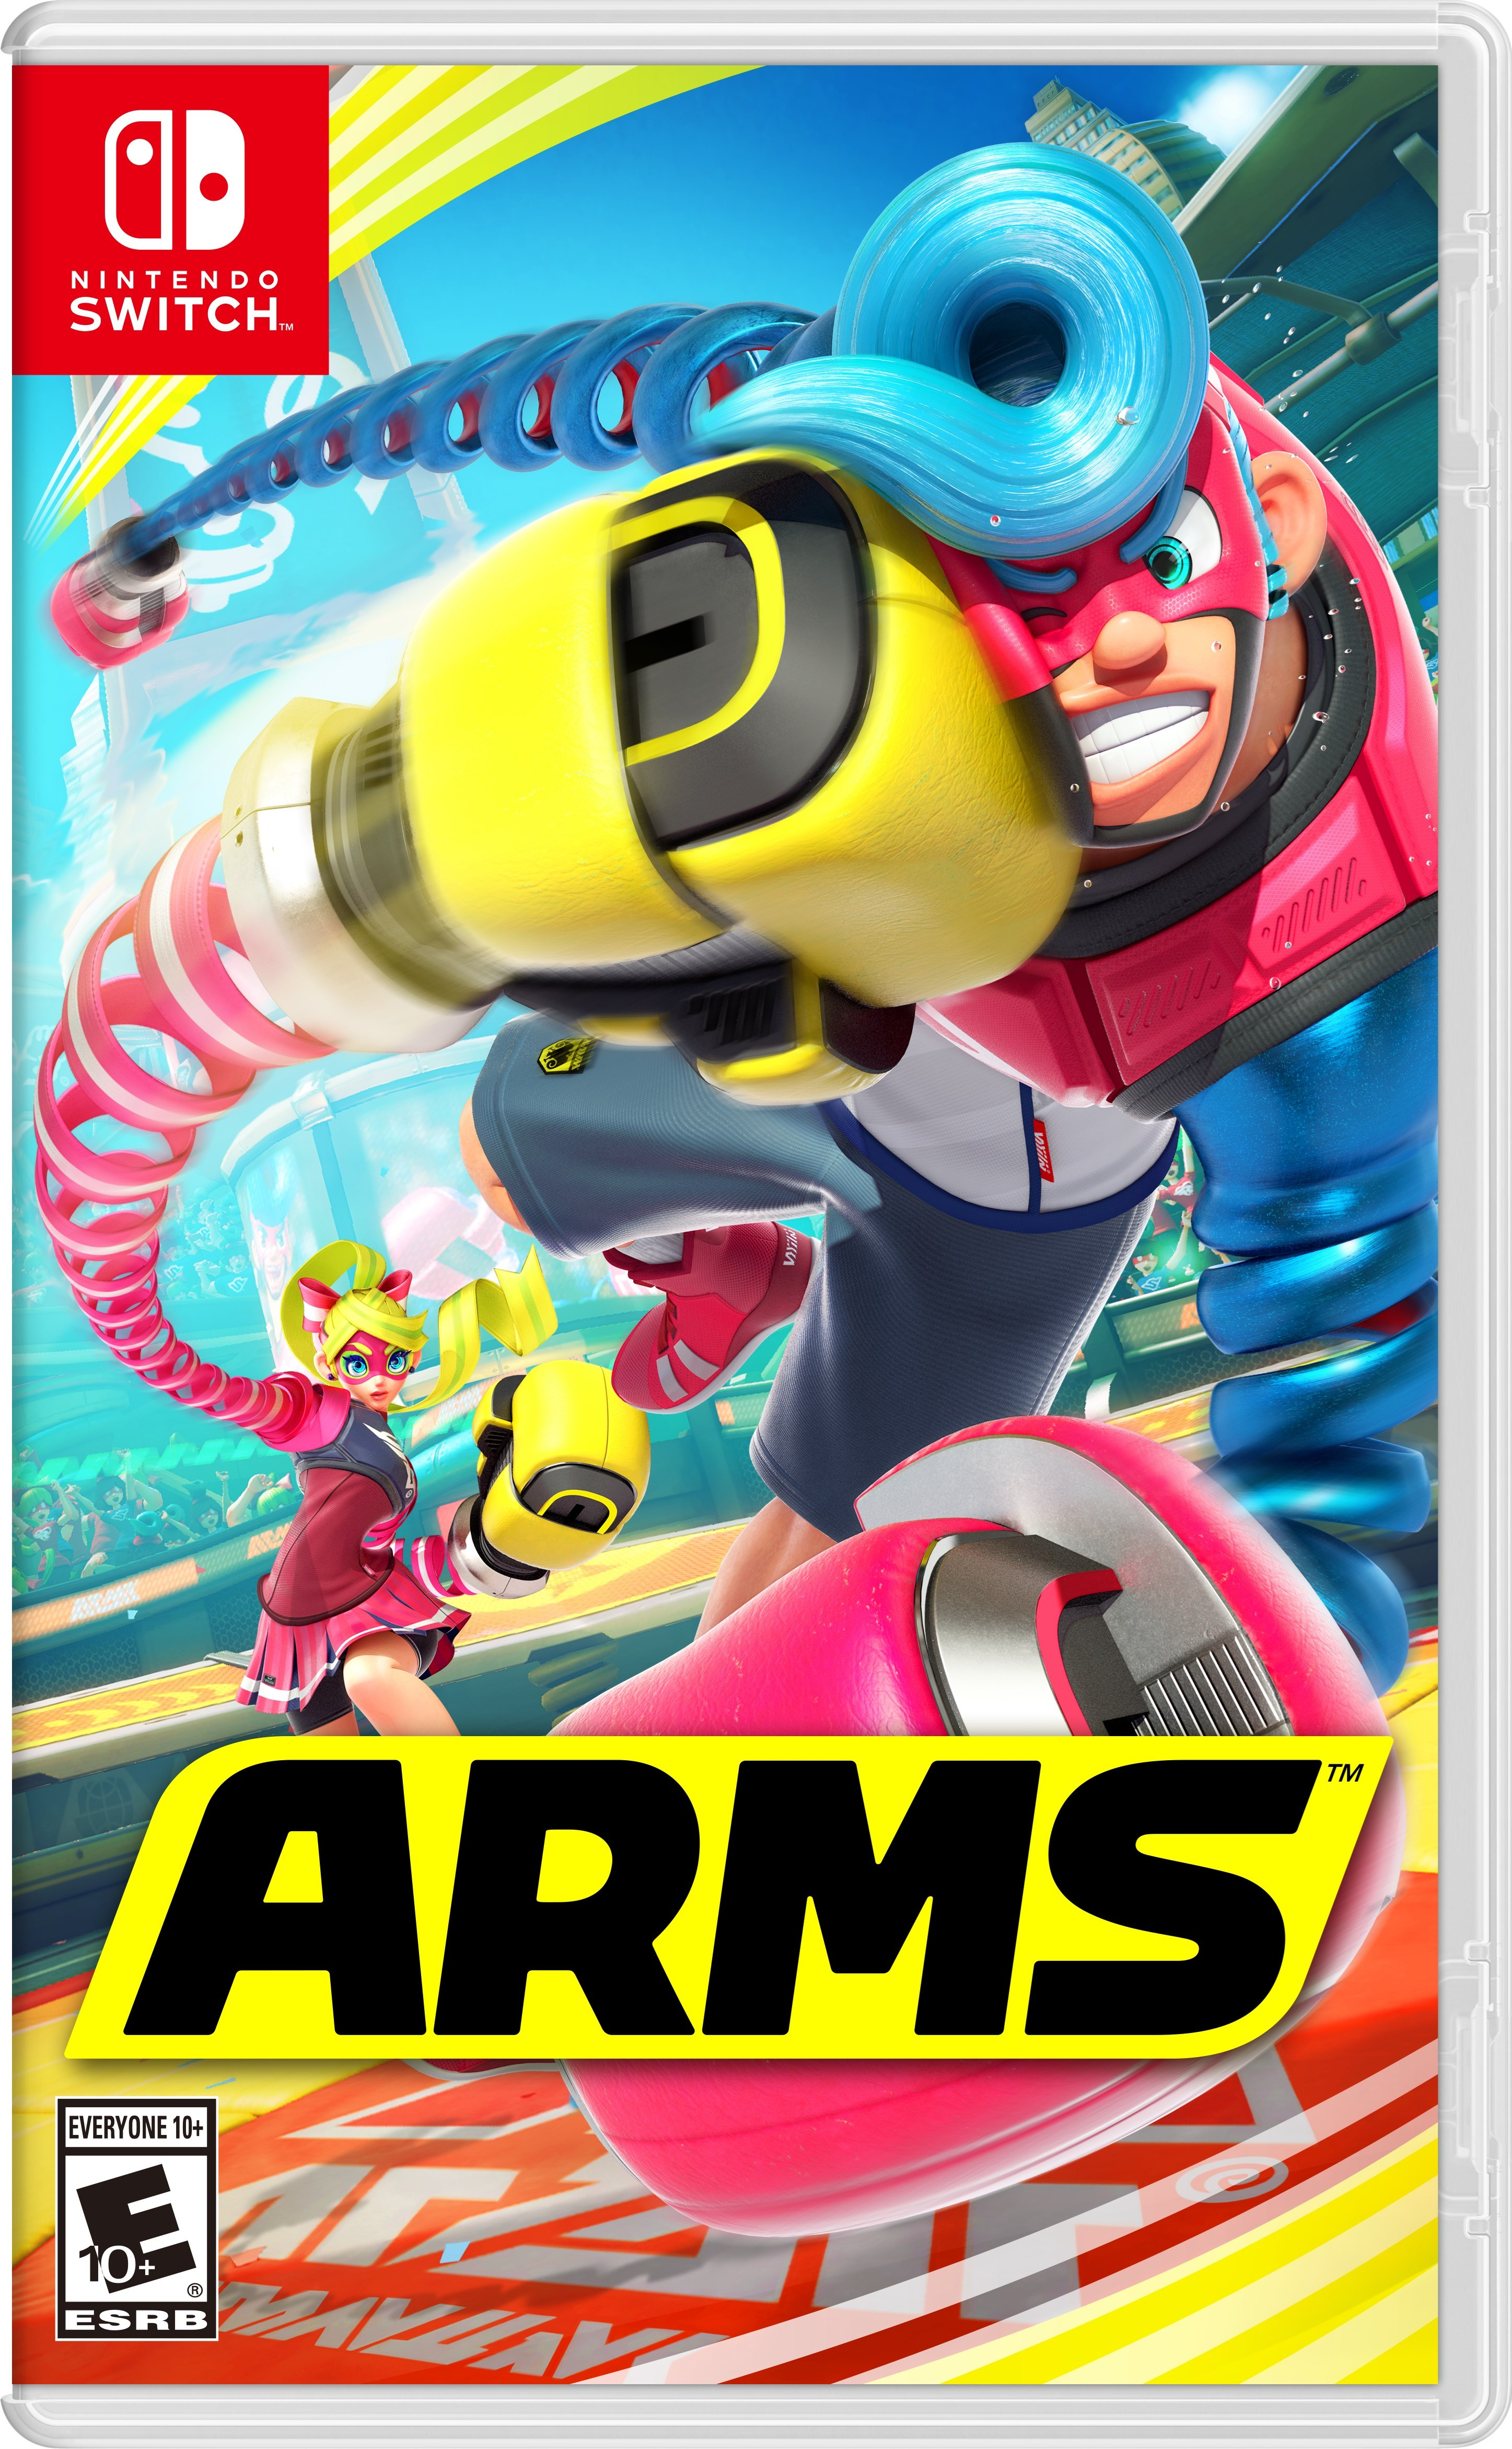 Revolutionary New Fighting Game Arms Now Available For Nintendo Pokemon Tournament Dx Us English Switch Business Wire